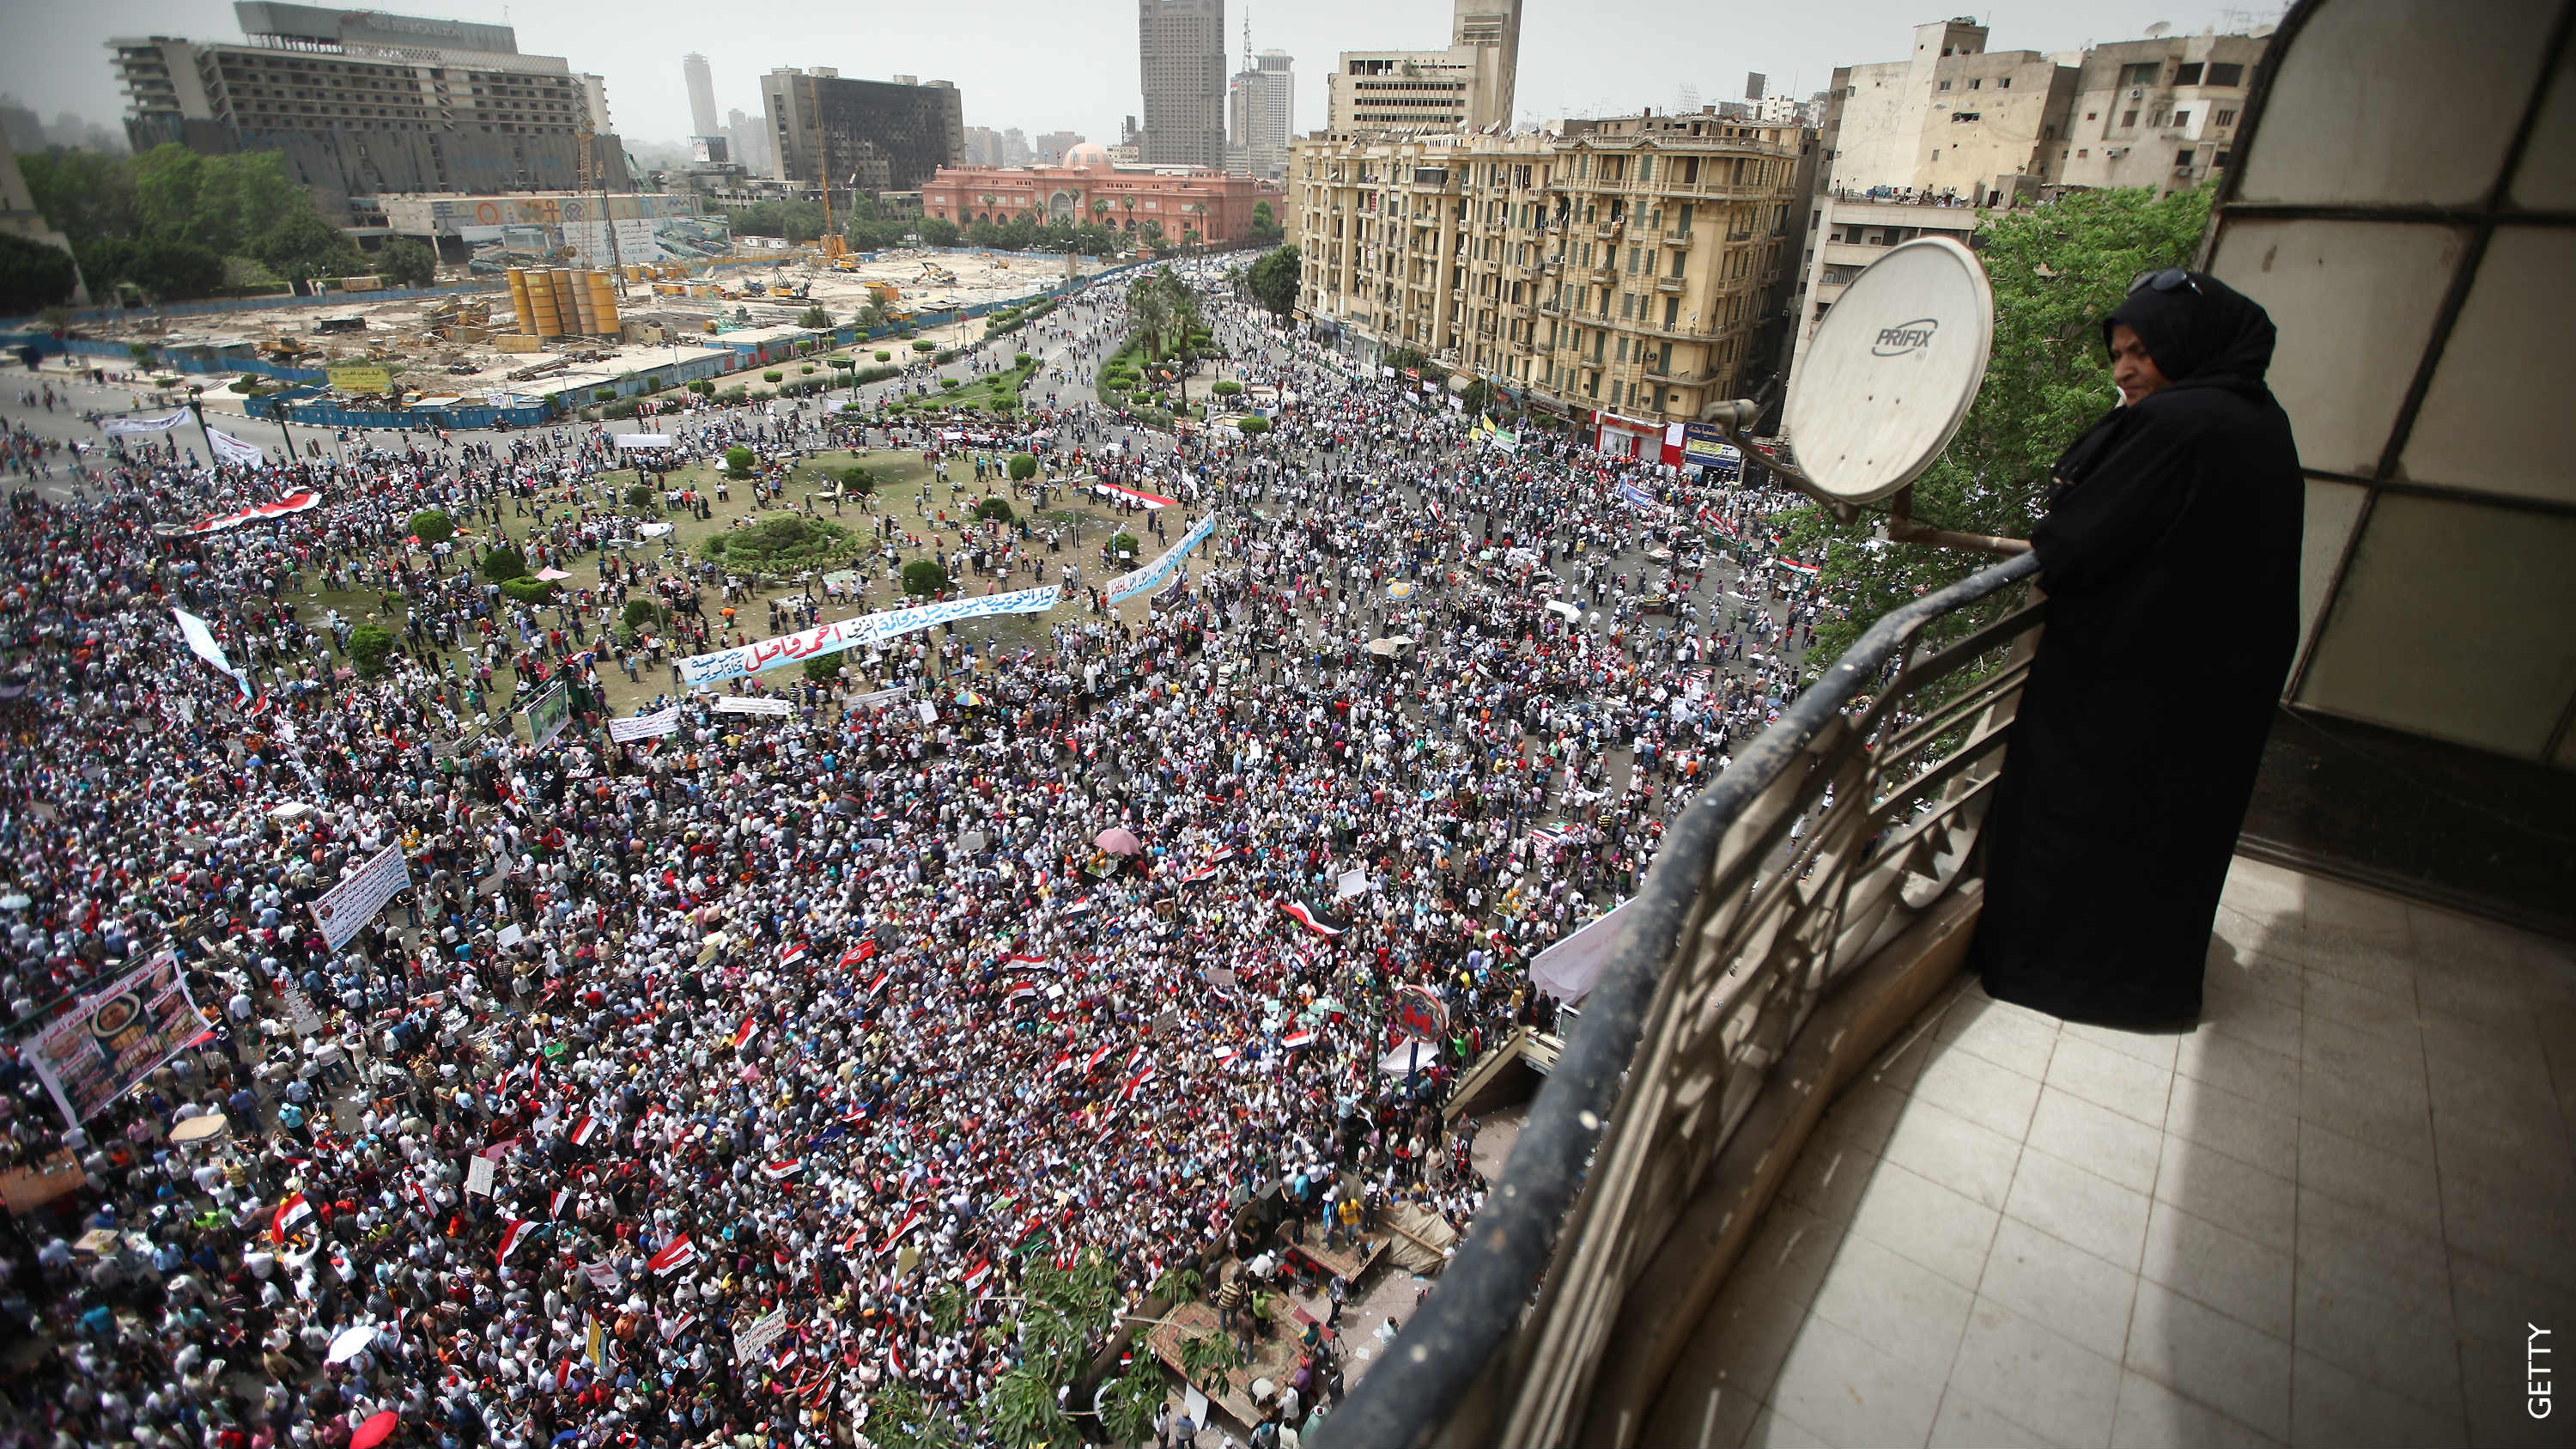 A woman on a balcony overlooks a crowd in Tahrir Square, Cairo.